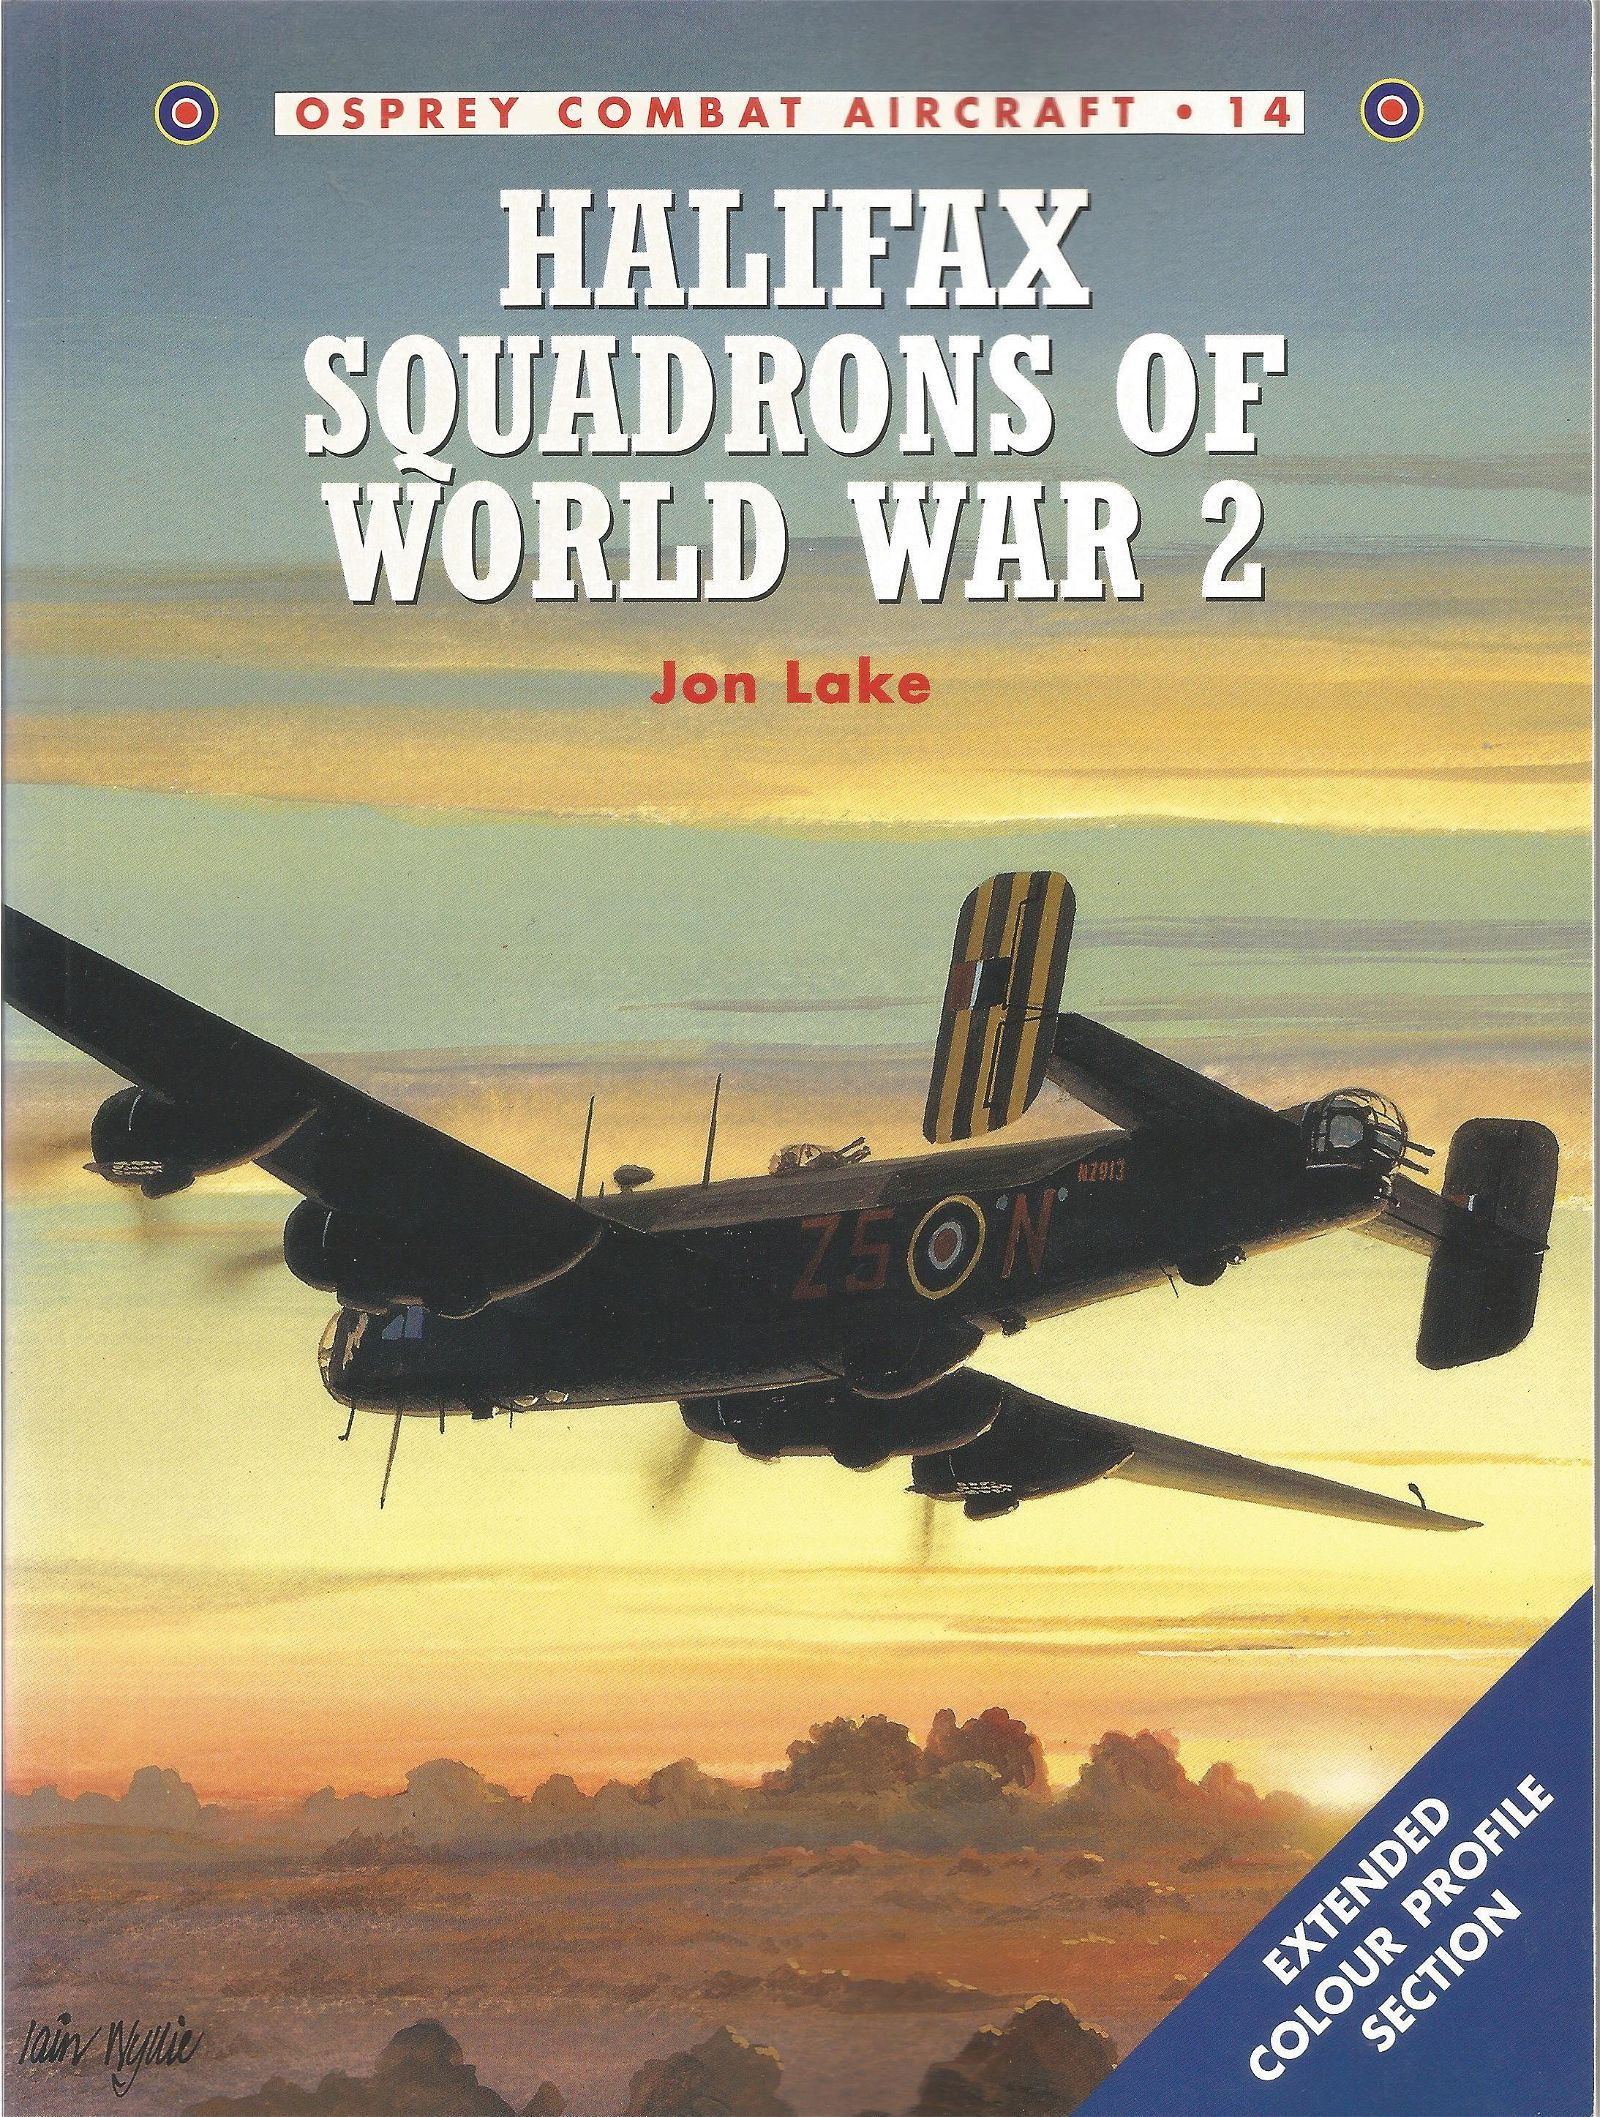 Jon Lake. Halifax Squadrons of World War Two. A First